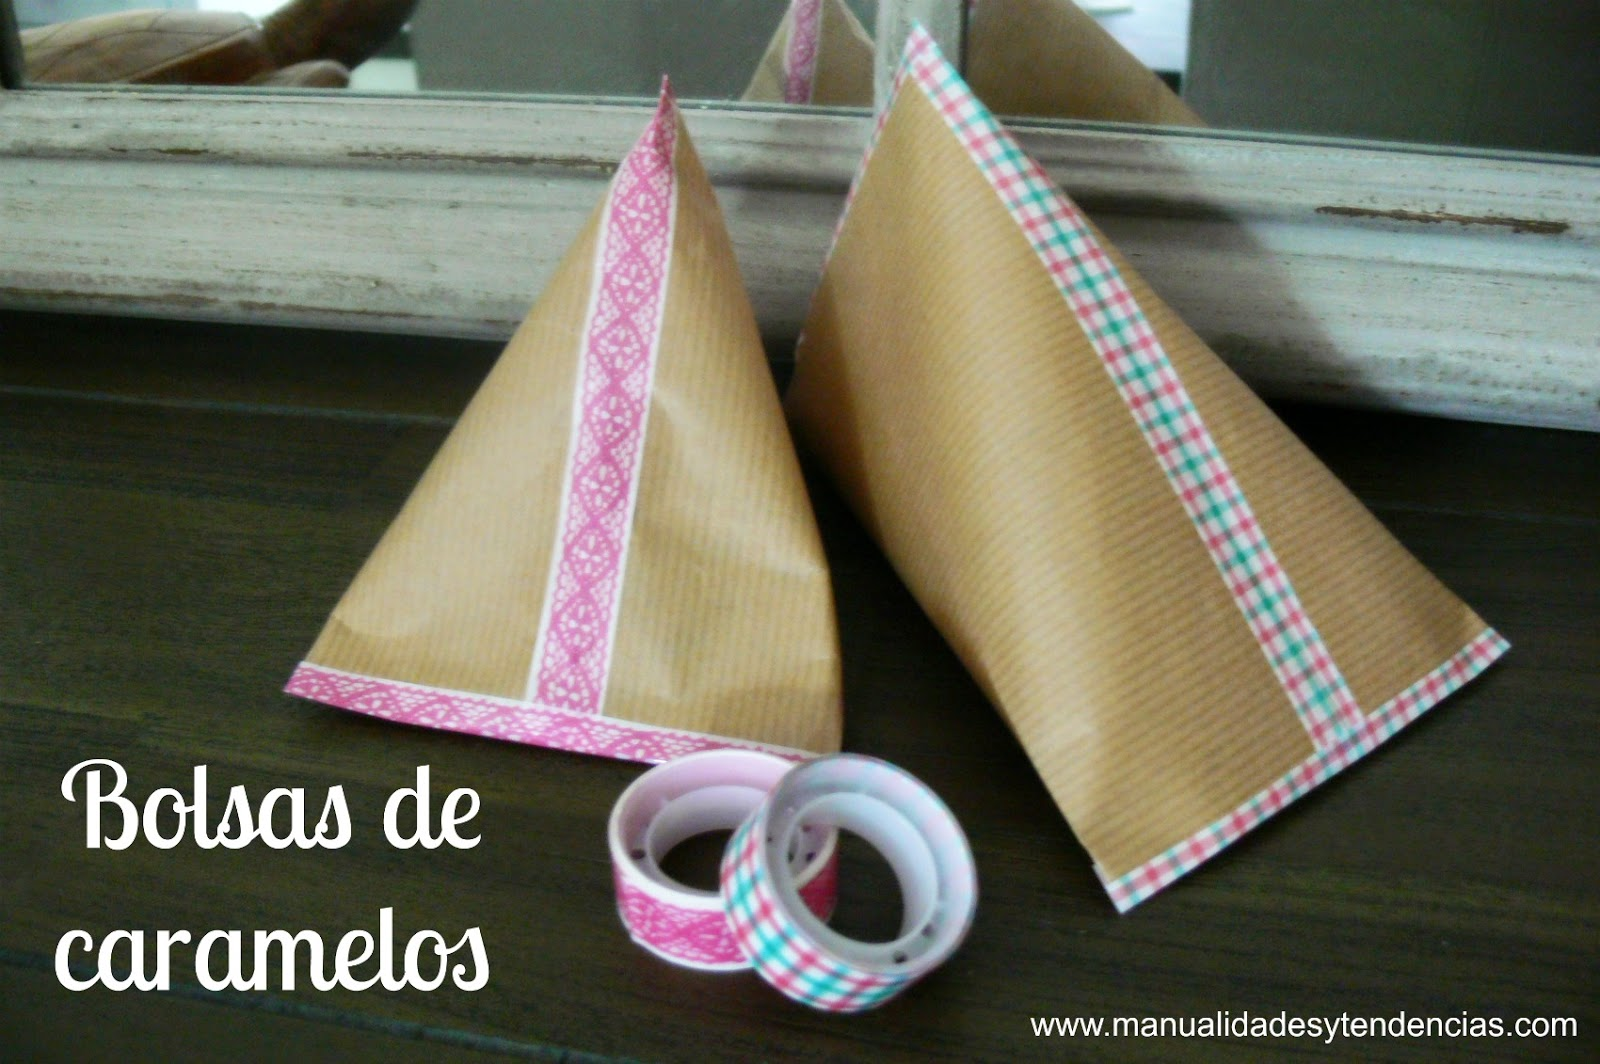 Manualidades y tendencias bolsas de caramelos de papel kraft candy bag - Manualidades con papel craft ...